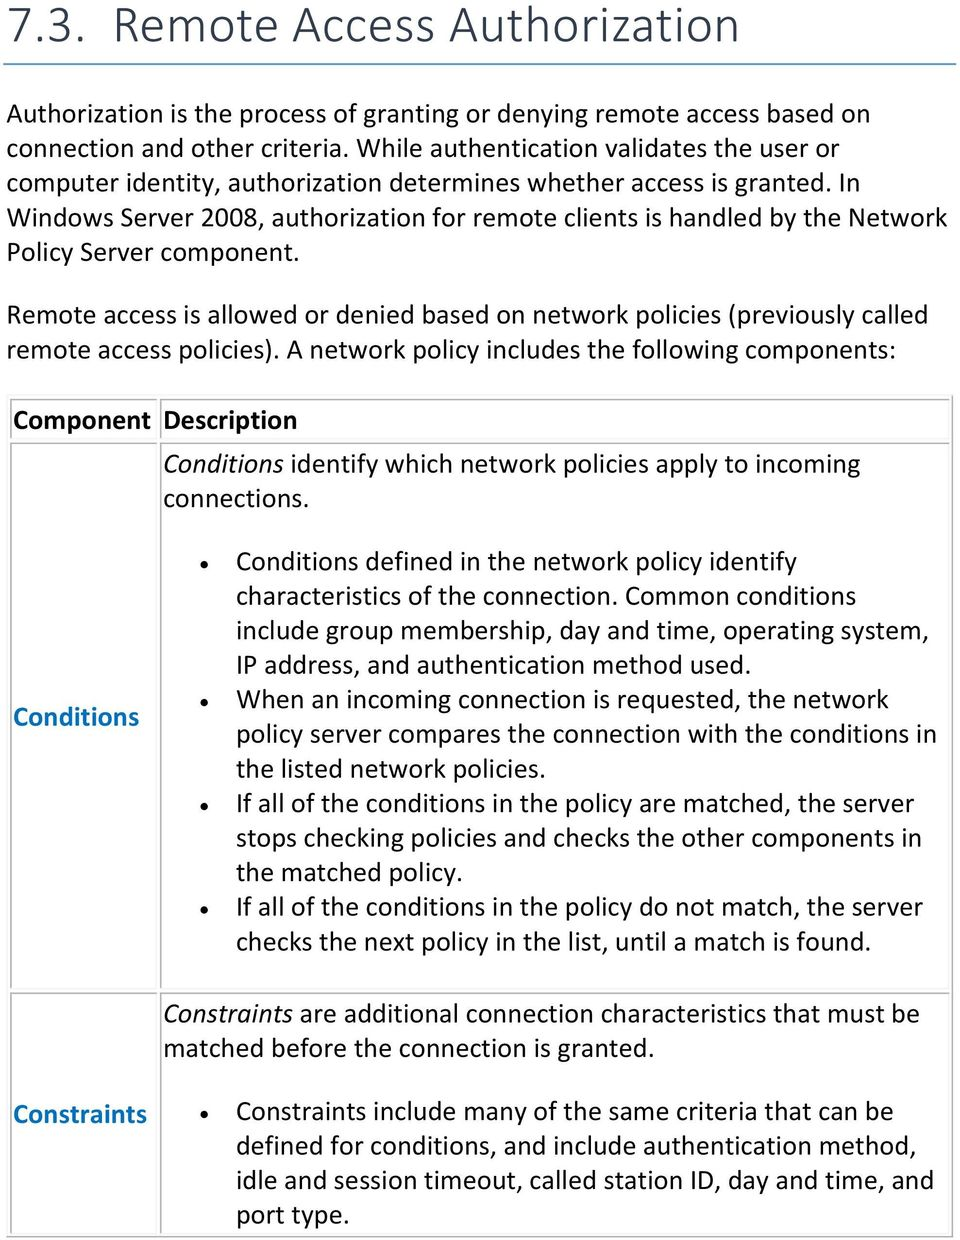 In Windows Server 2008, authorization for remote clients is handled by the Network Policy Server component.